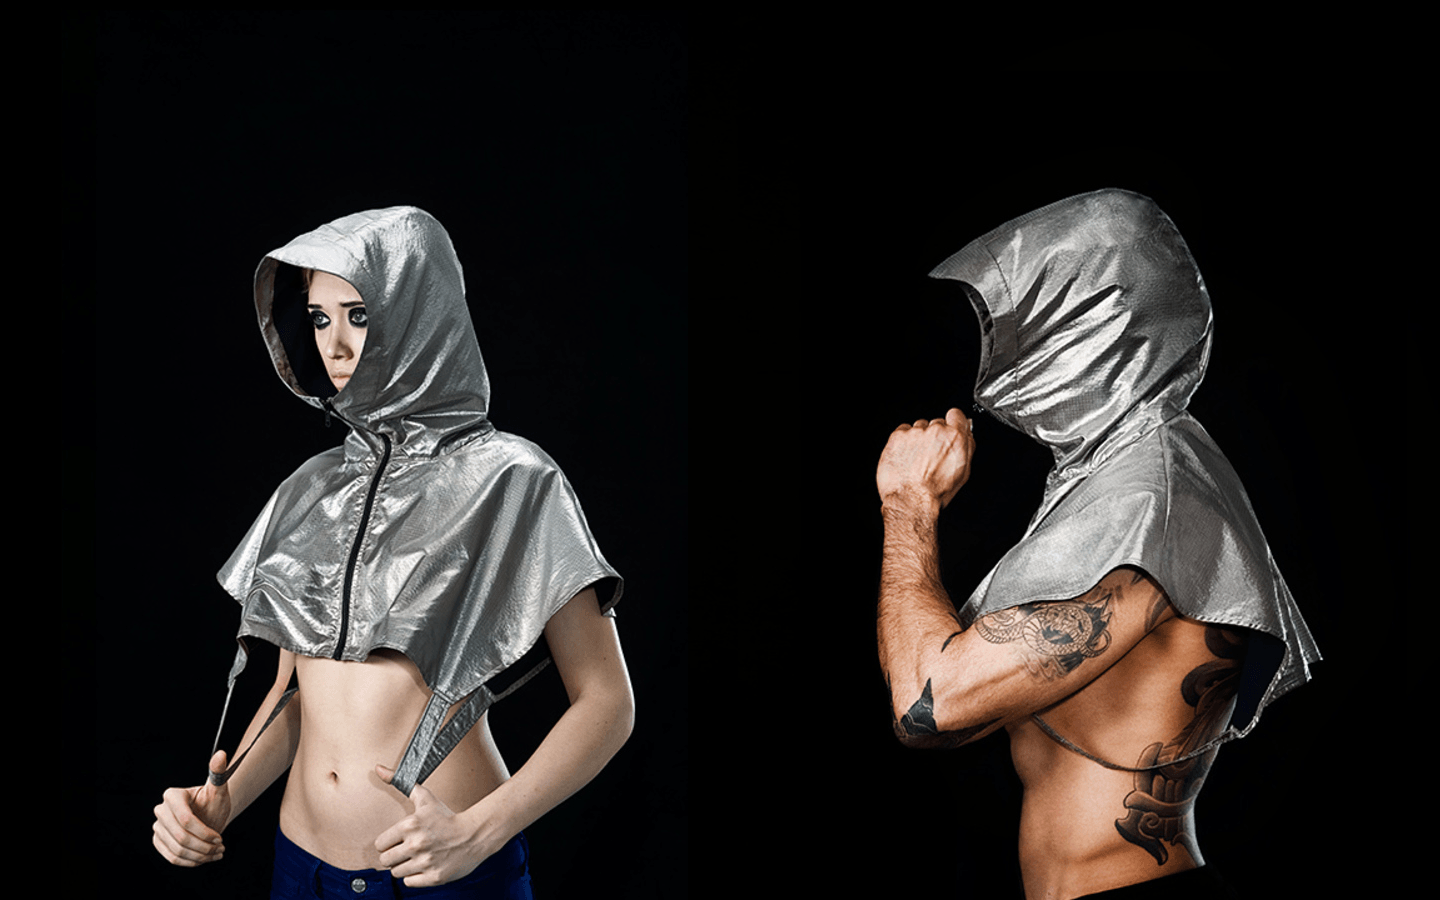 stealth smart clothing - anti-drone hoodie and burqa as well as an accessory that can instantly zero out your phone's signal